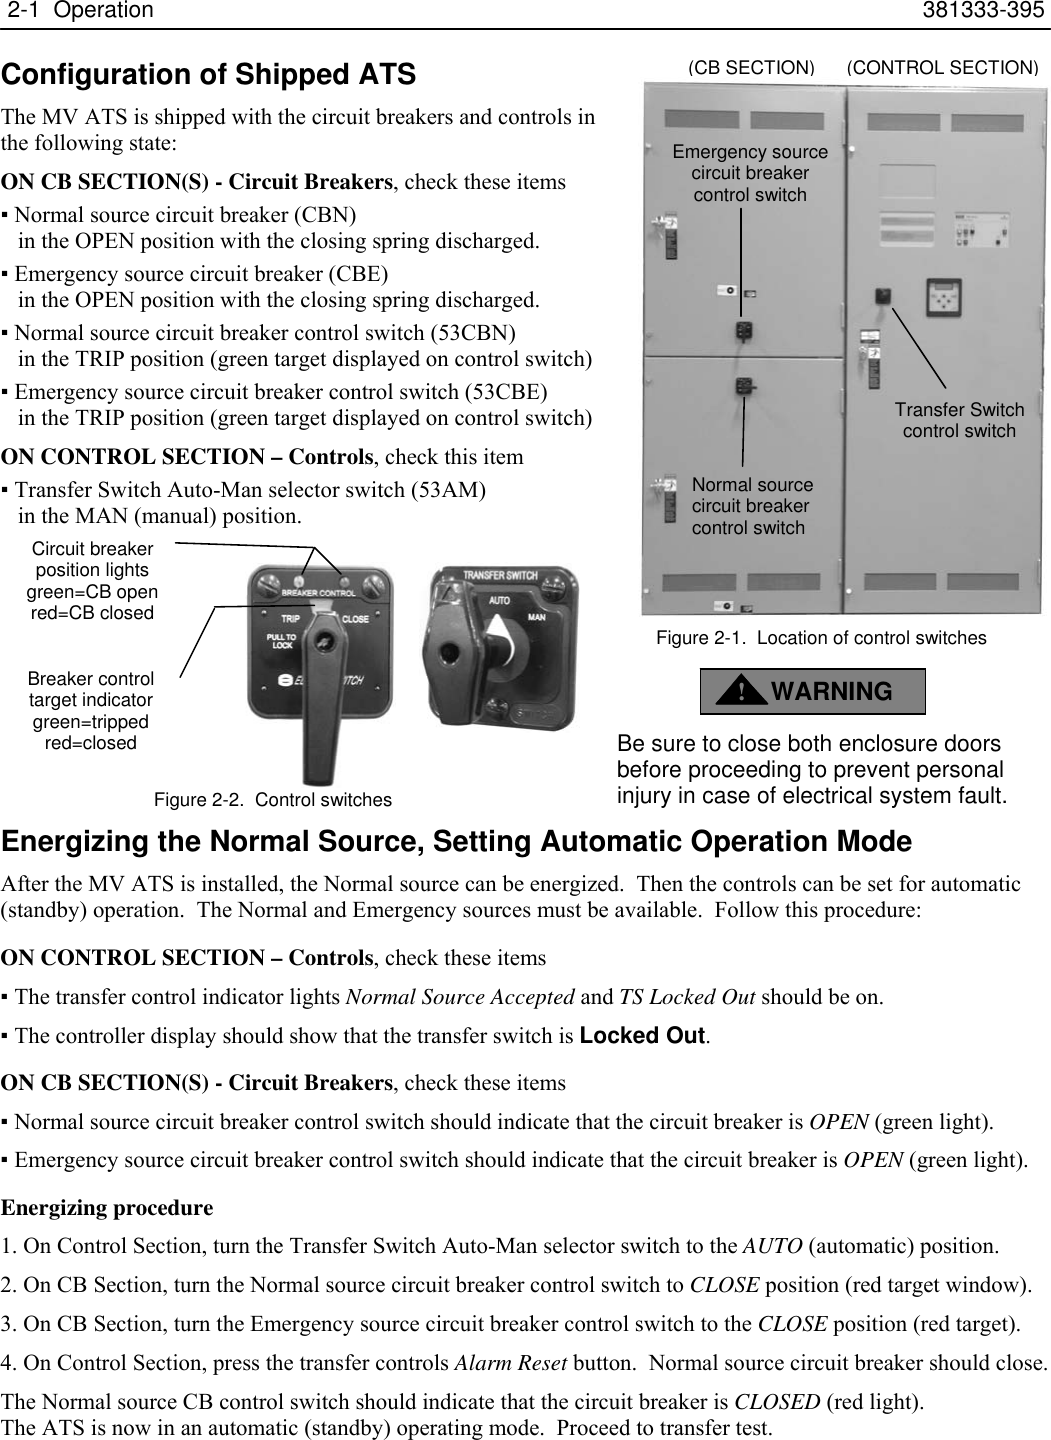 Emerson Asco 7000 Series Medium Voltage Transfer Switch Users Manual Automatic Wiring Diagram Page 4 Of 12